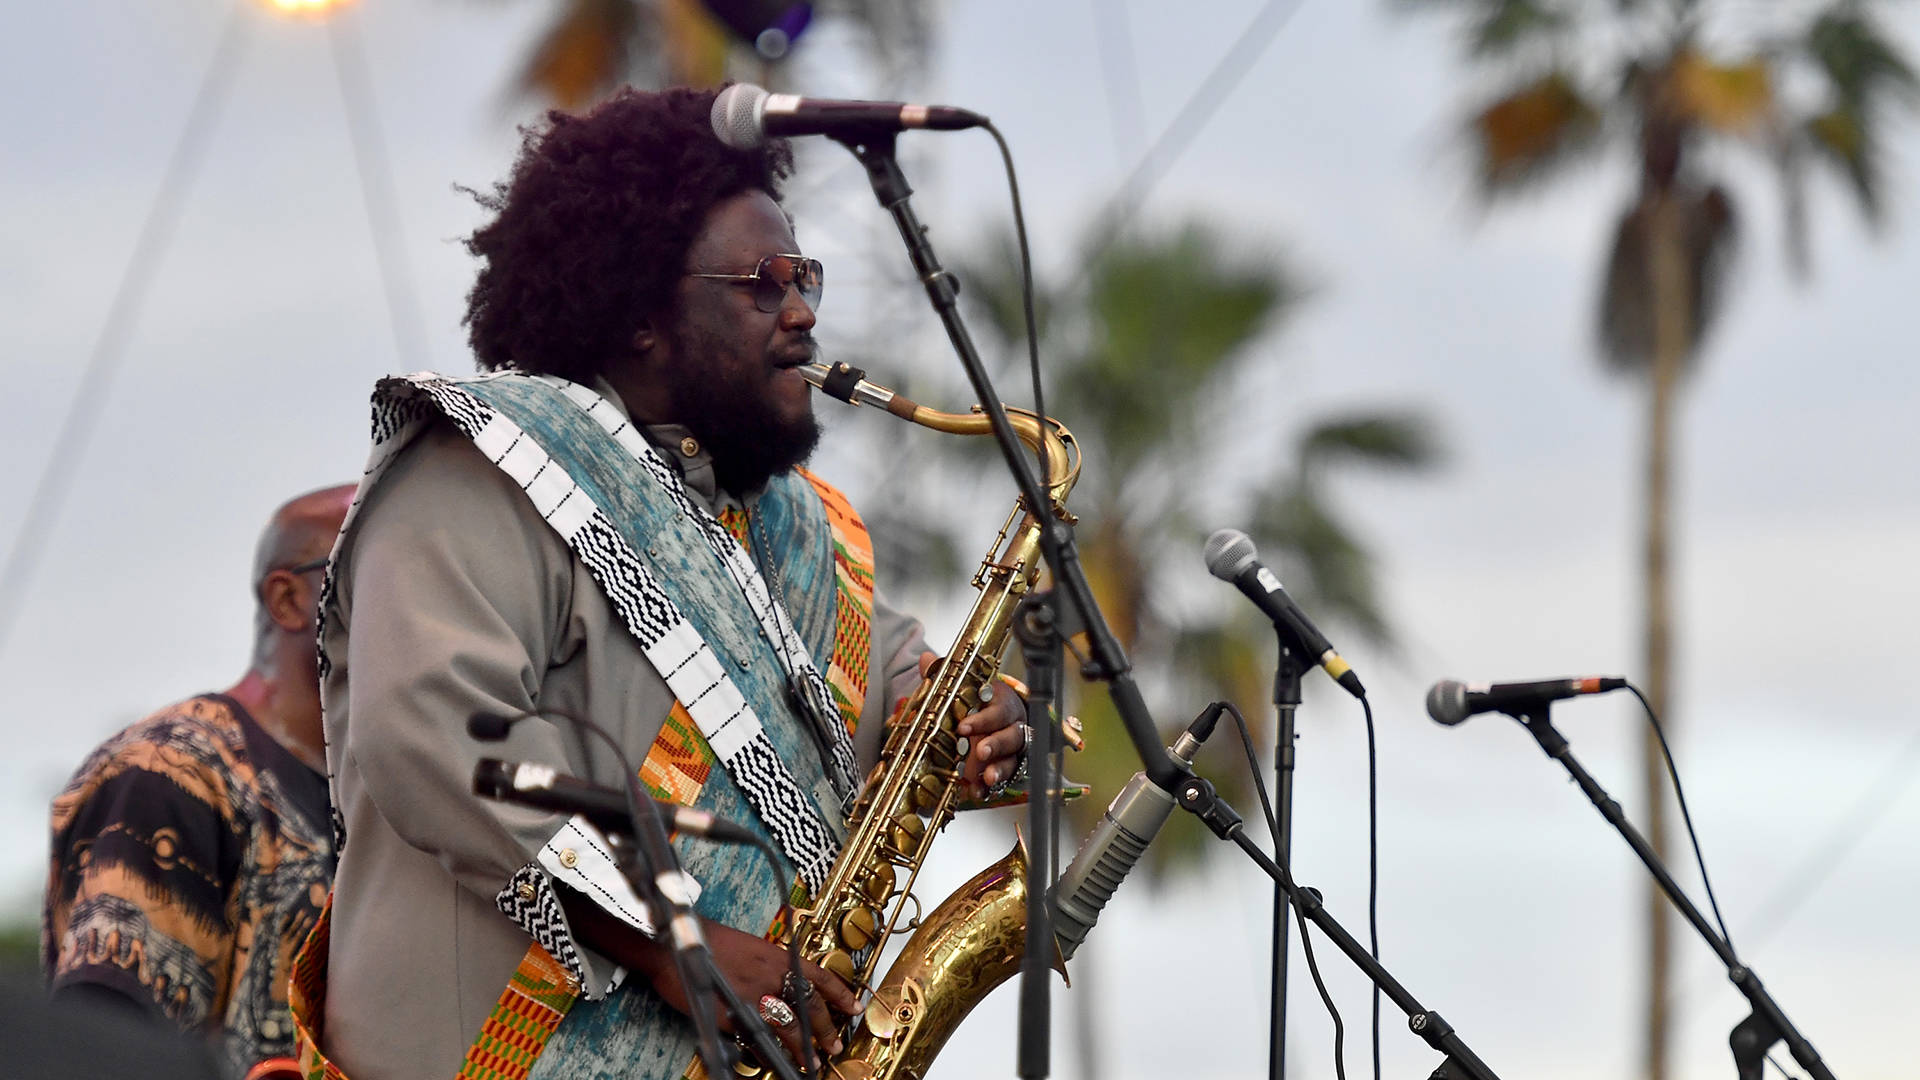 Kamasi Washington performs at the 2018 Coachella Valley Music and Arts Festival Weekend 1 at the Empire Polo Field on April 15, 2018 in Indio, California.   Frazer Harrison/Getty Images for Coachella